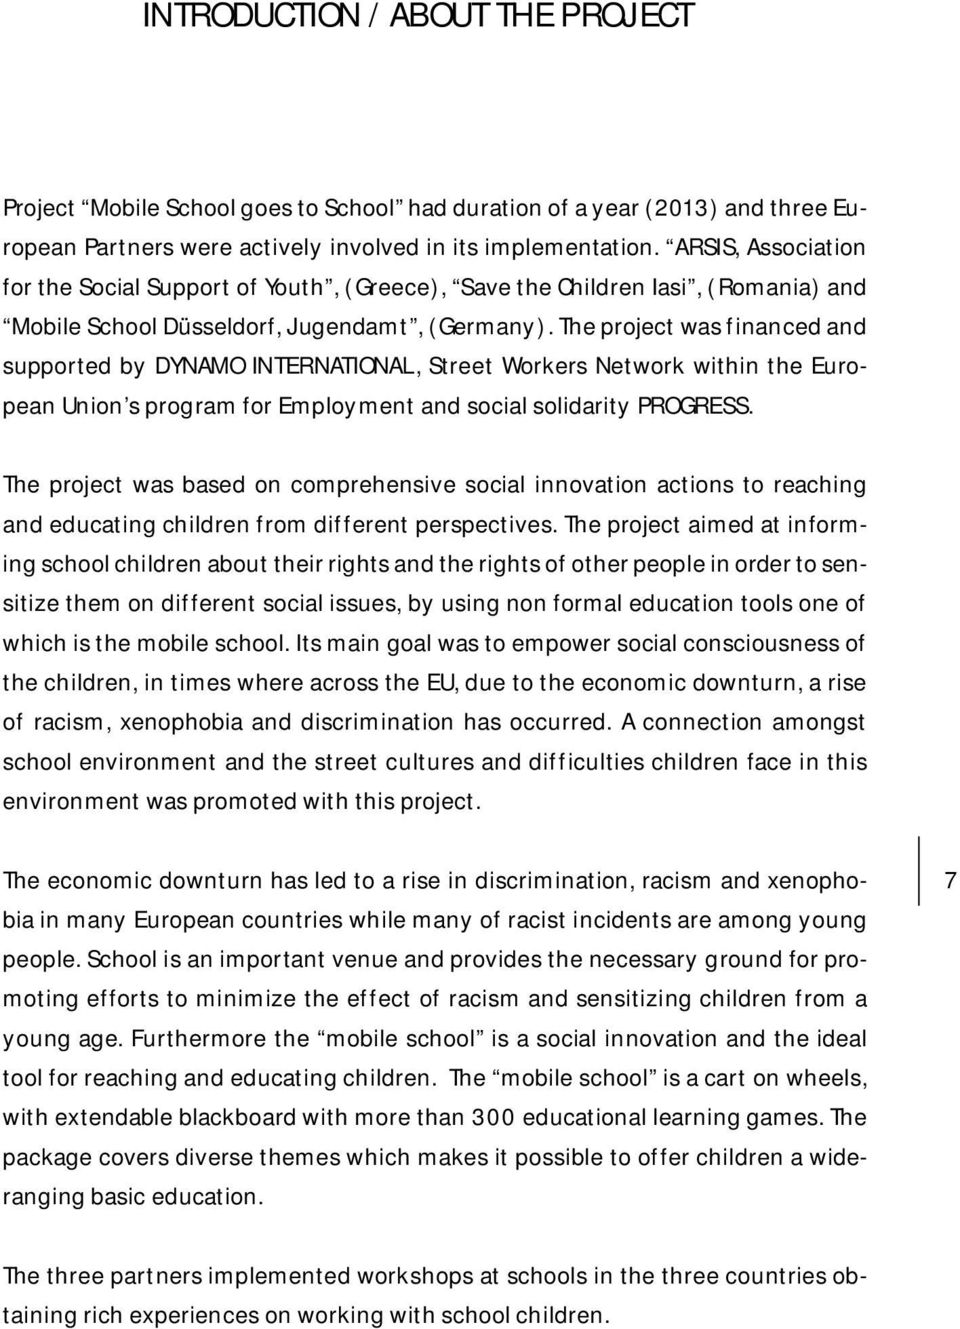 The project was financed and supported by DYNAMO INTERNATIONAL, Street Workers Network within the European Union s program for Employment and social solidarity PROGRESS.